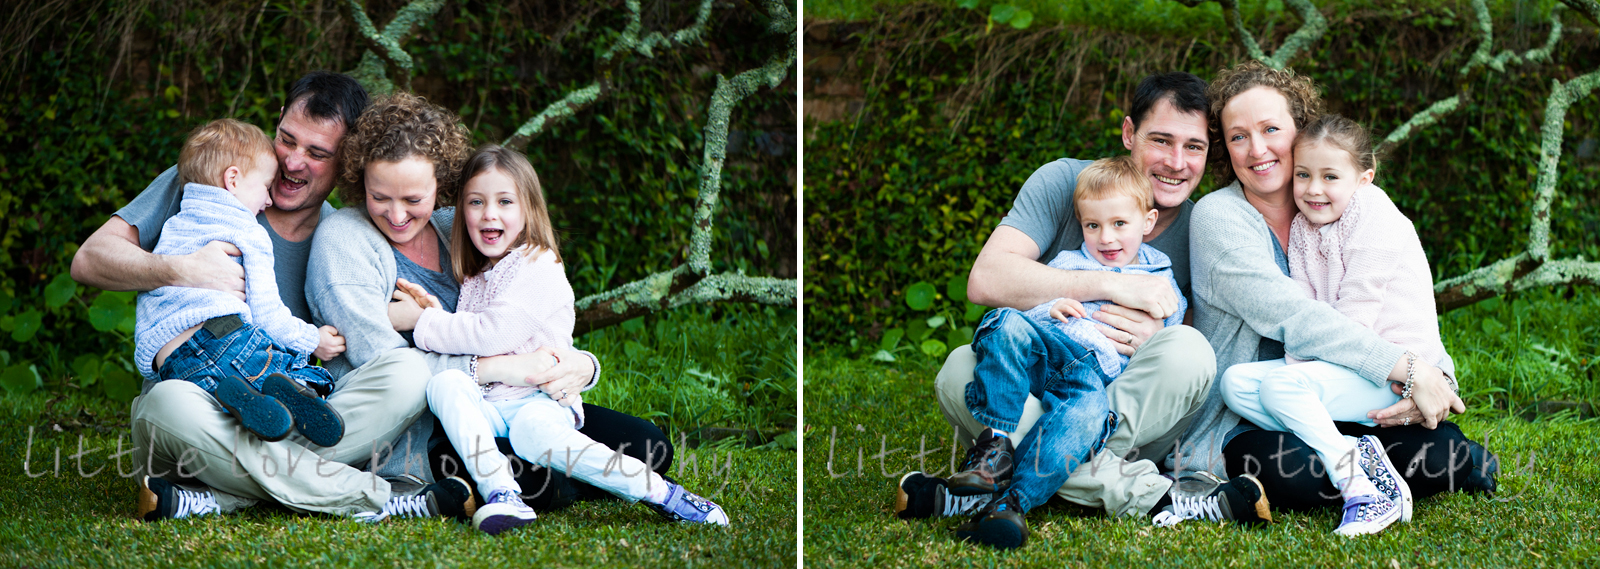 beautiful-photograph-of-a-family-in-natural-light-candid-and-unposed-by-little-love-photography